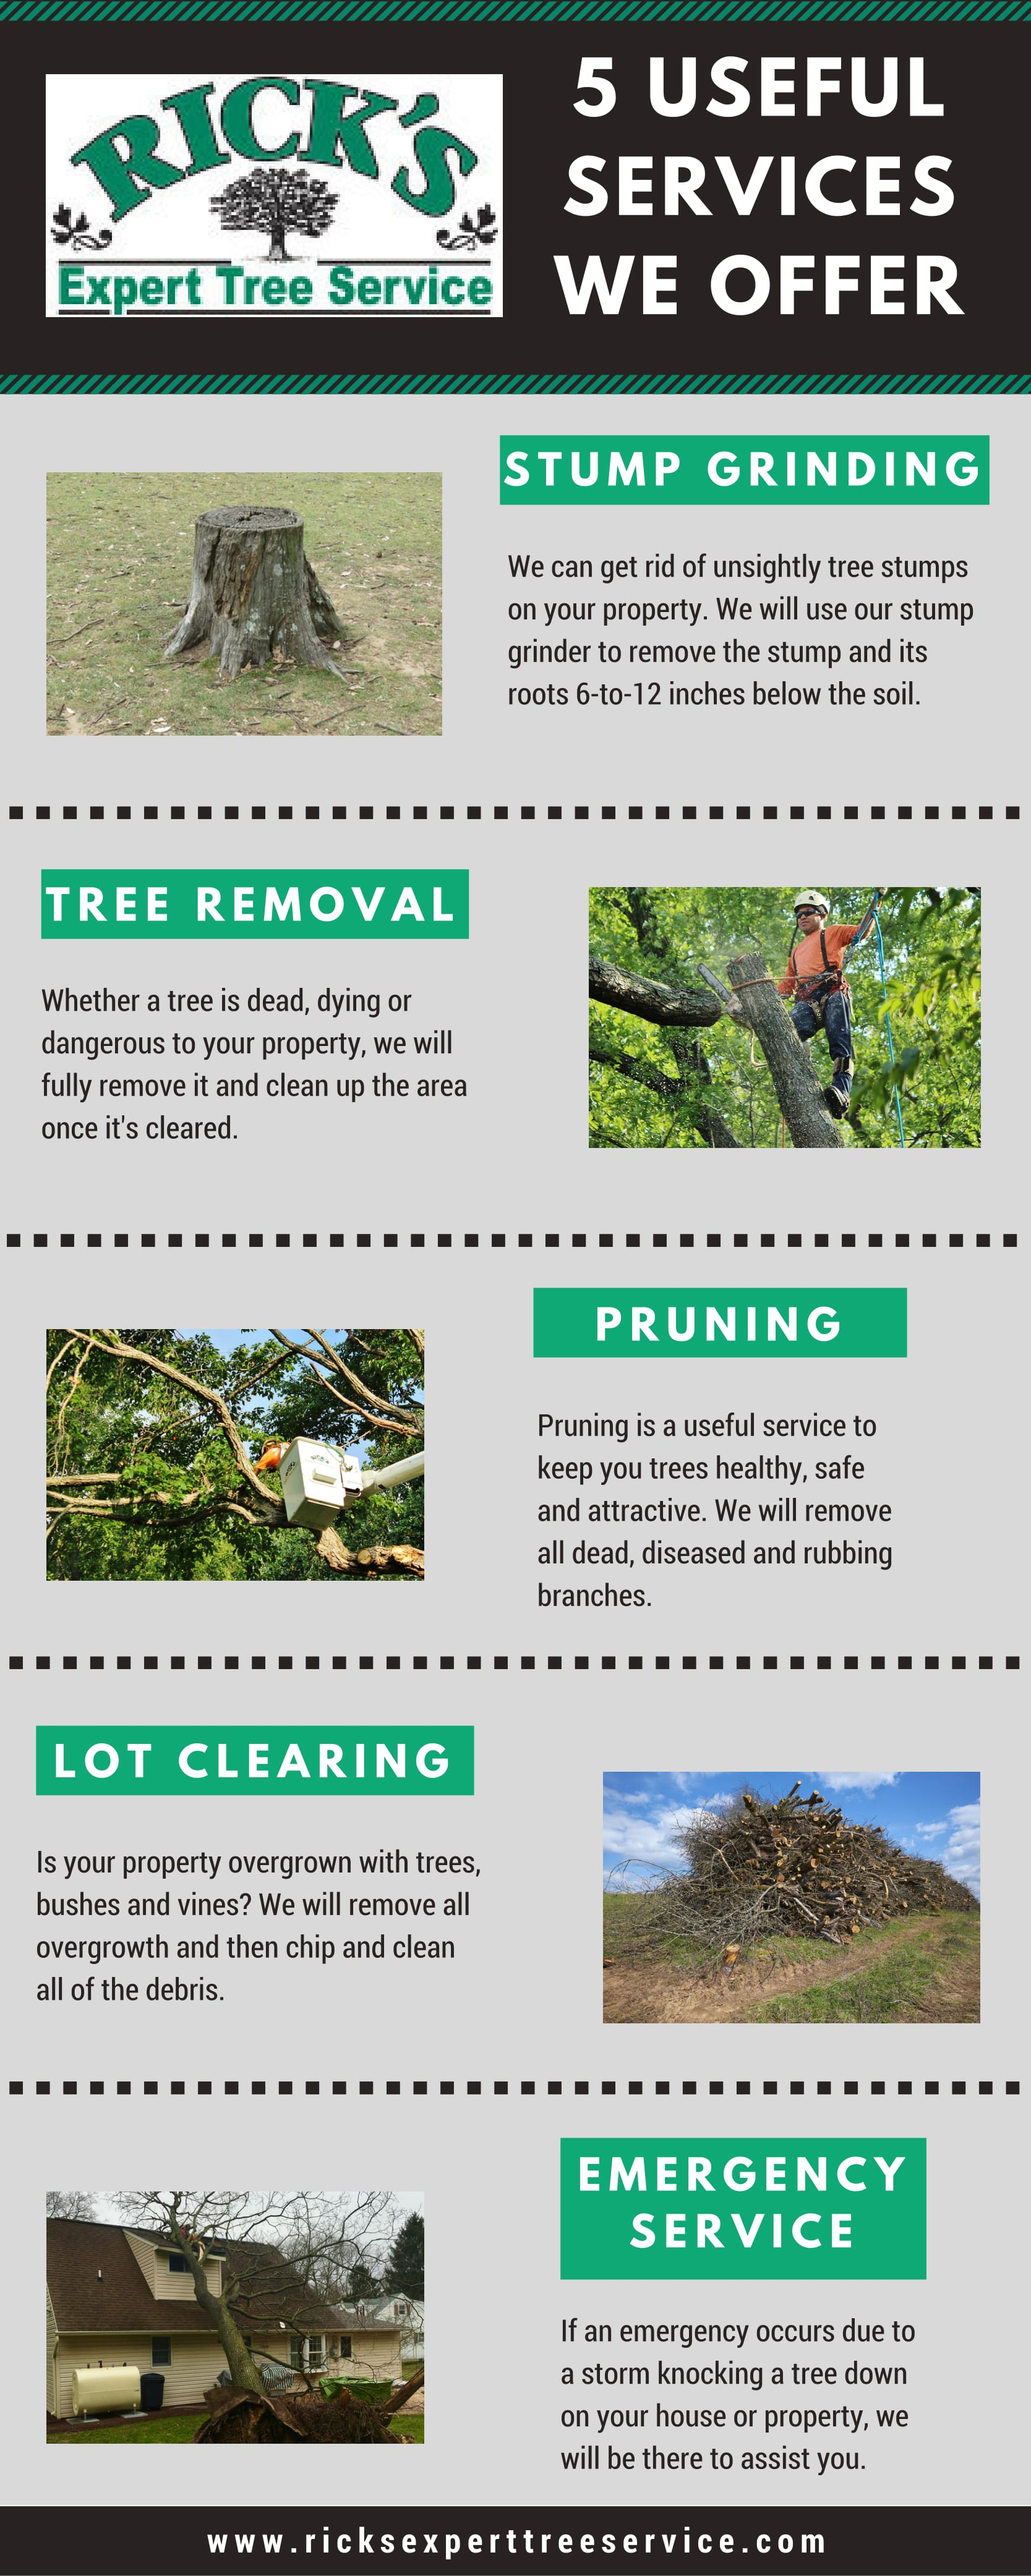 Blog | Ricks Expert Tree Service